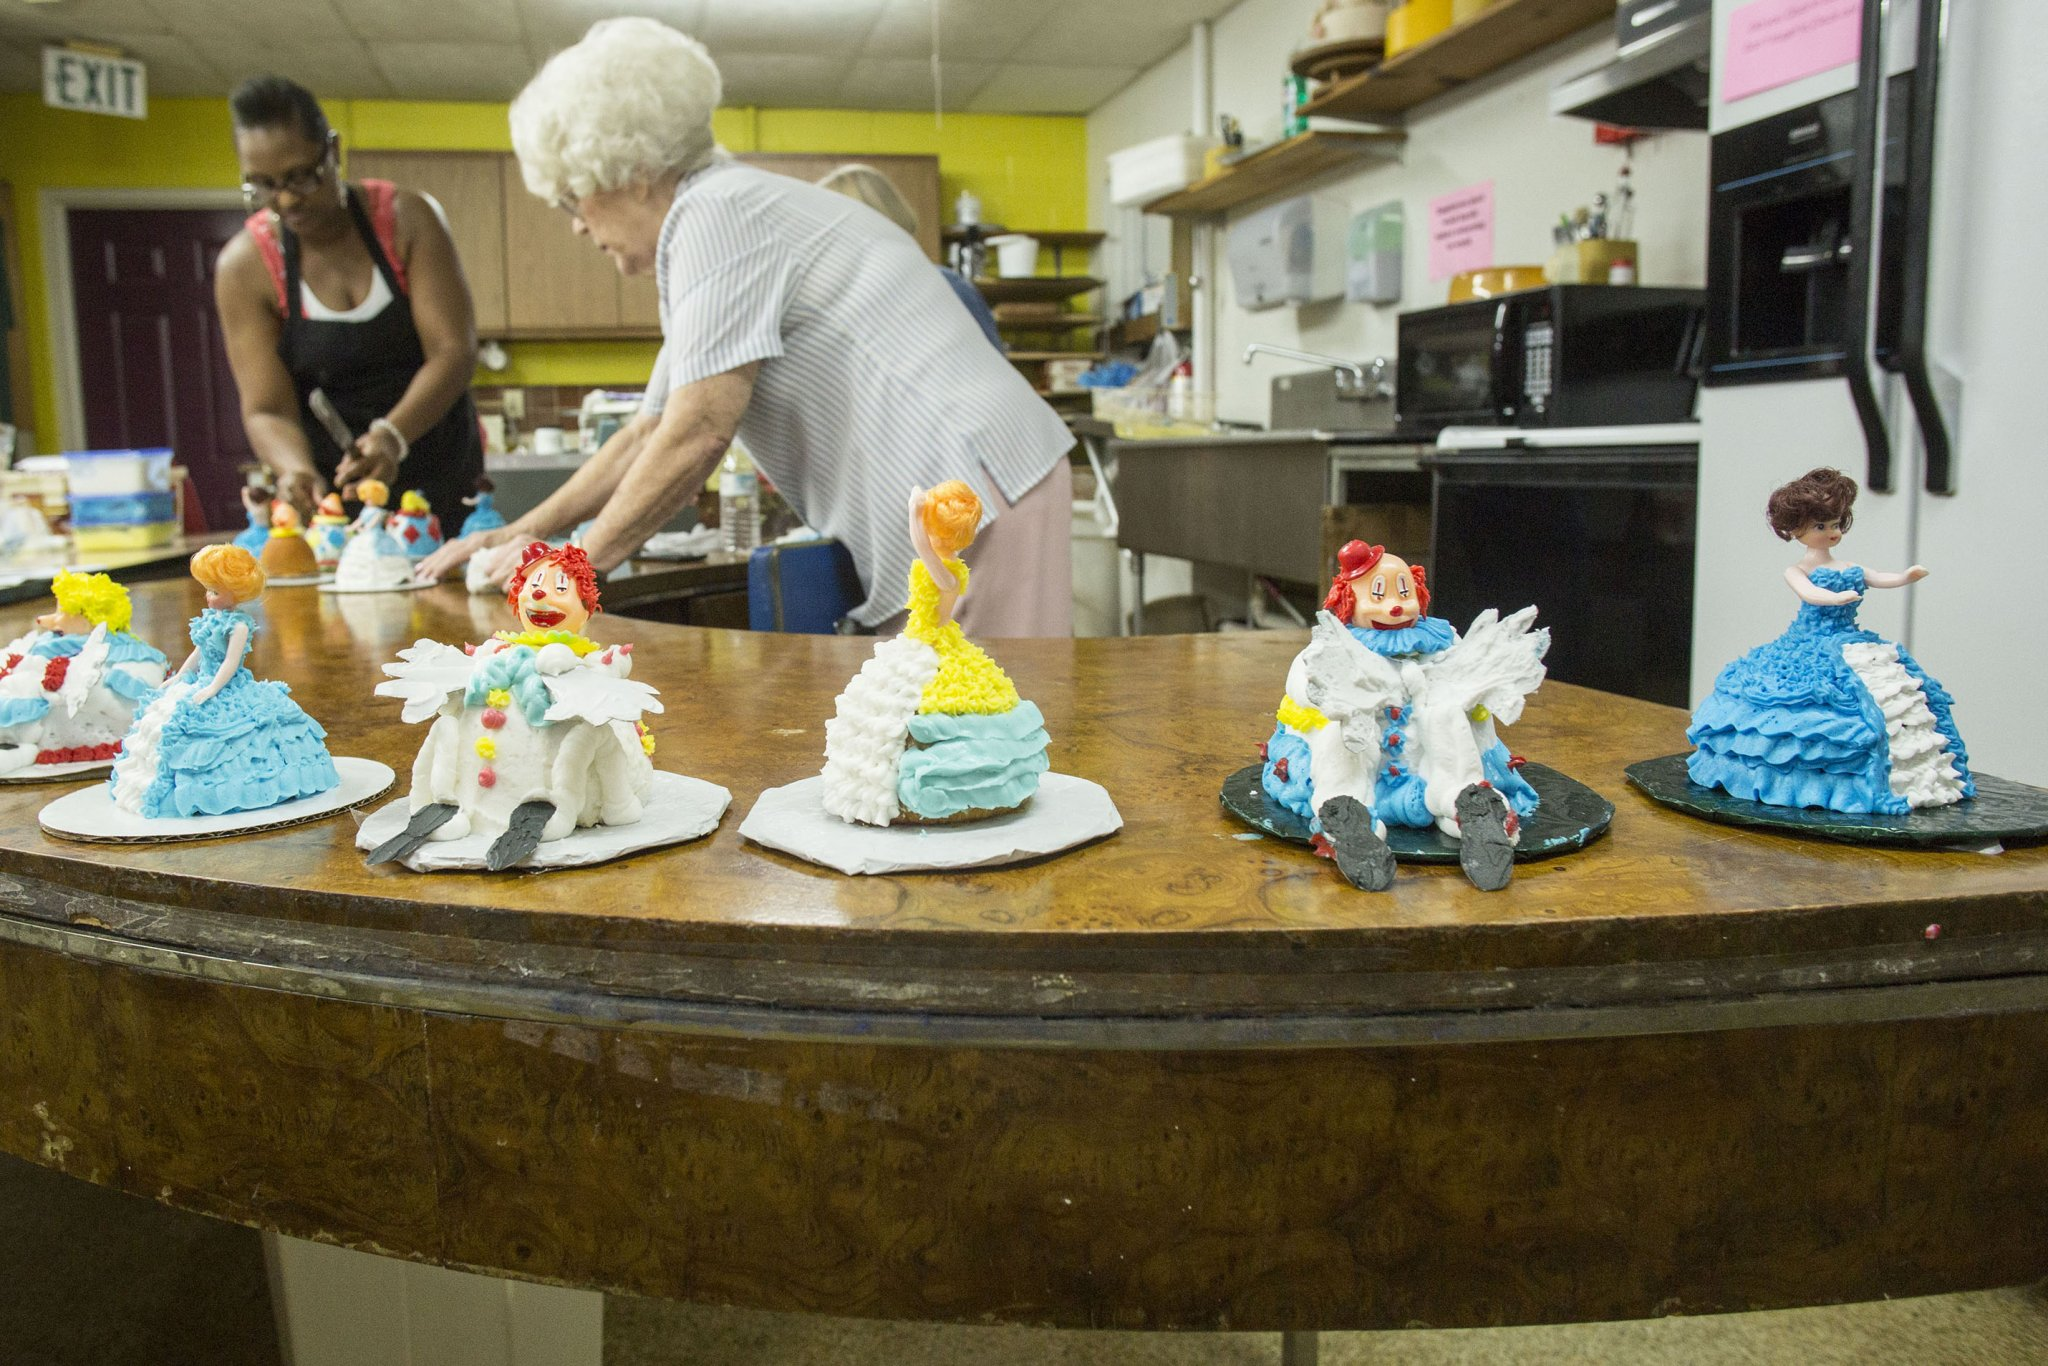 Cake Decorating Class Kl : Longtime cake decorator departs with decades of sugary ...